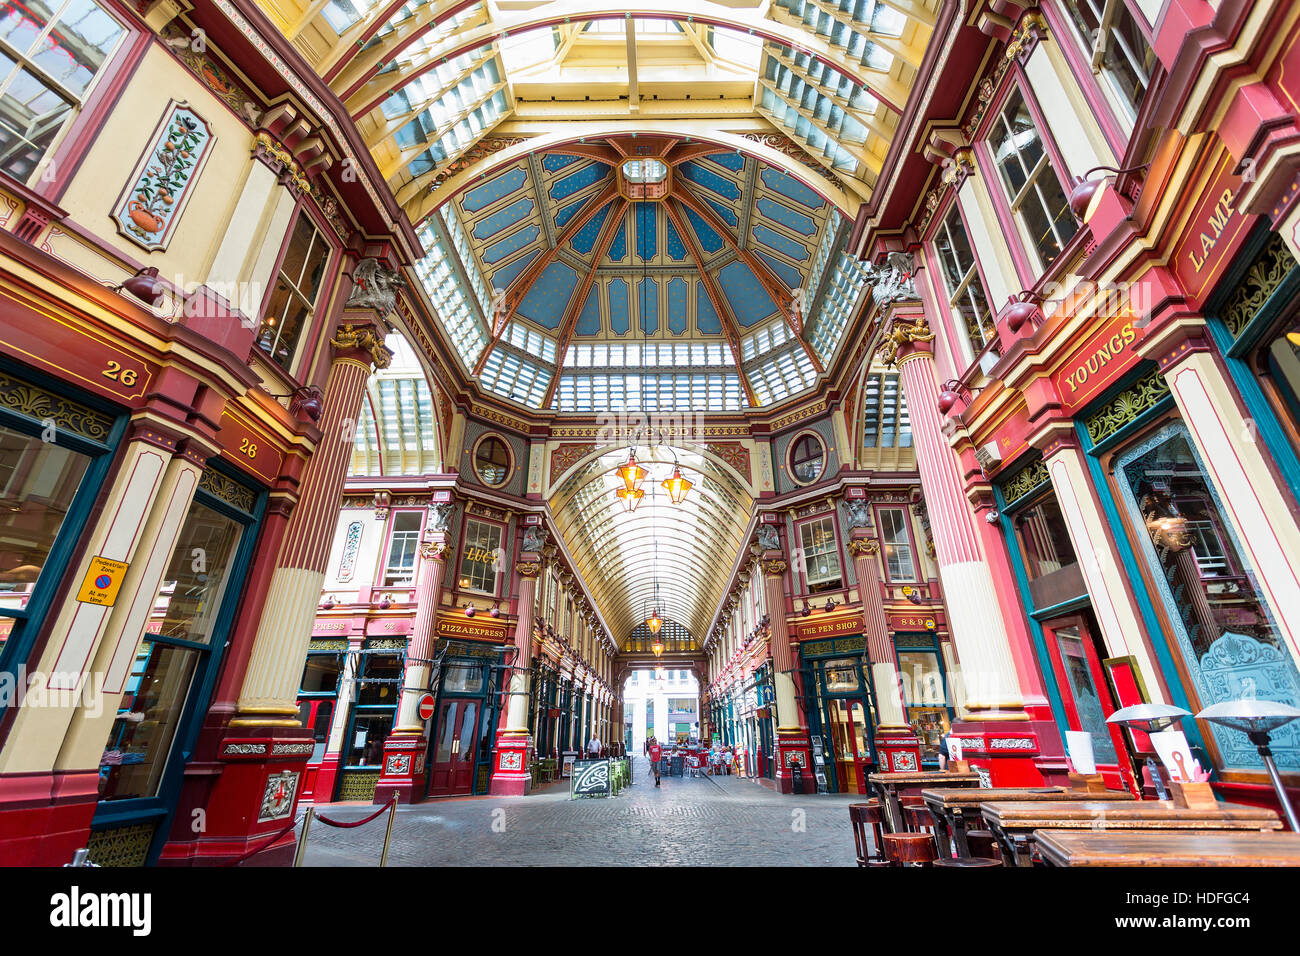 LONDON - Inside view of Leadenhall Market, Gracechurch Street, on August 25, 20116 in London, UK, The market dates - Stock Image